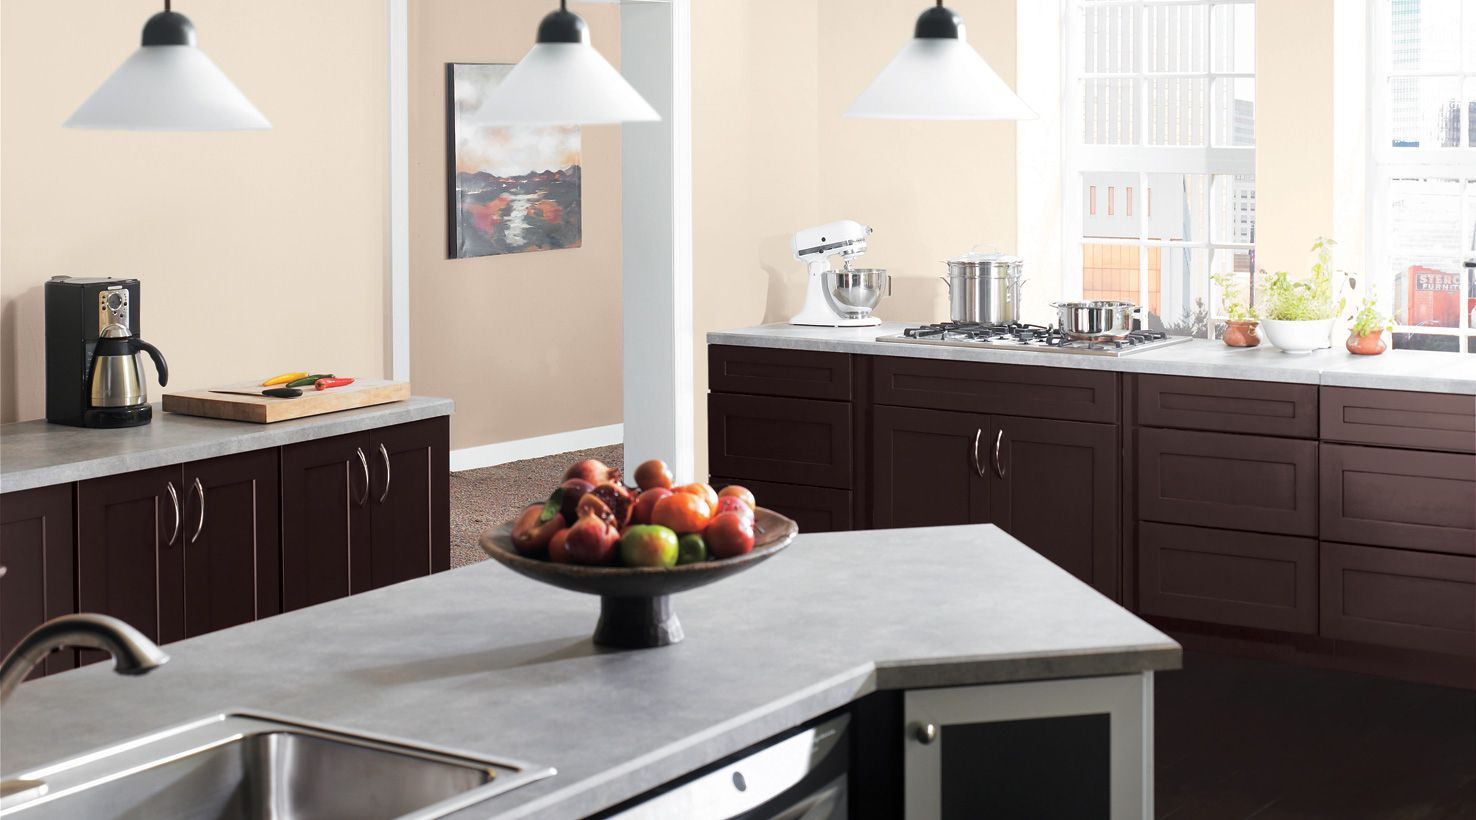 kitchen color decorating ideas. Sherwin Williams Kitchen Paint Colors - Cheap Island Ideas Check More At Http://www.entropiads.com/sherwin-williams-kitchen-paint-colors/ Color Decorating